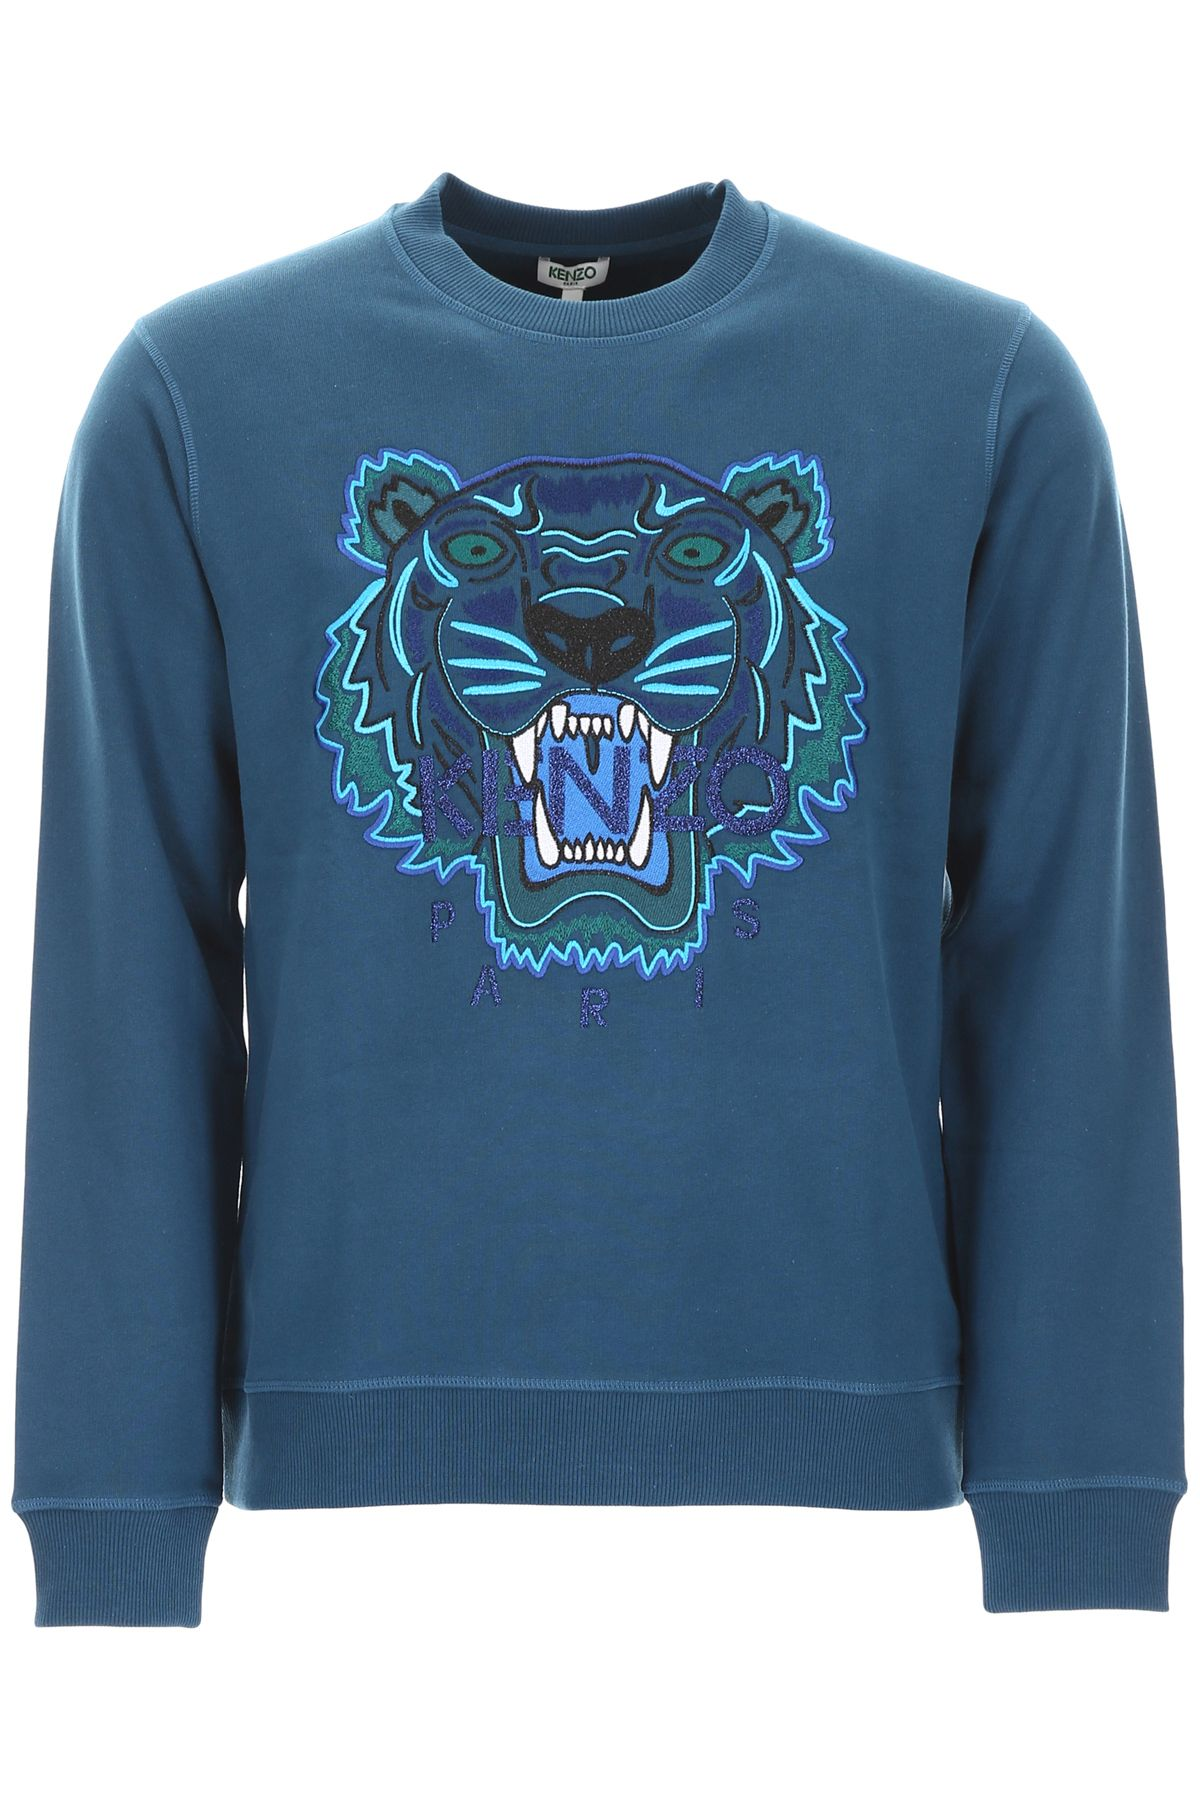 d851c21f italist | Best price in the market for Kenzo Kenzo Tiger Sweatshirt ...